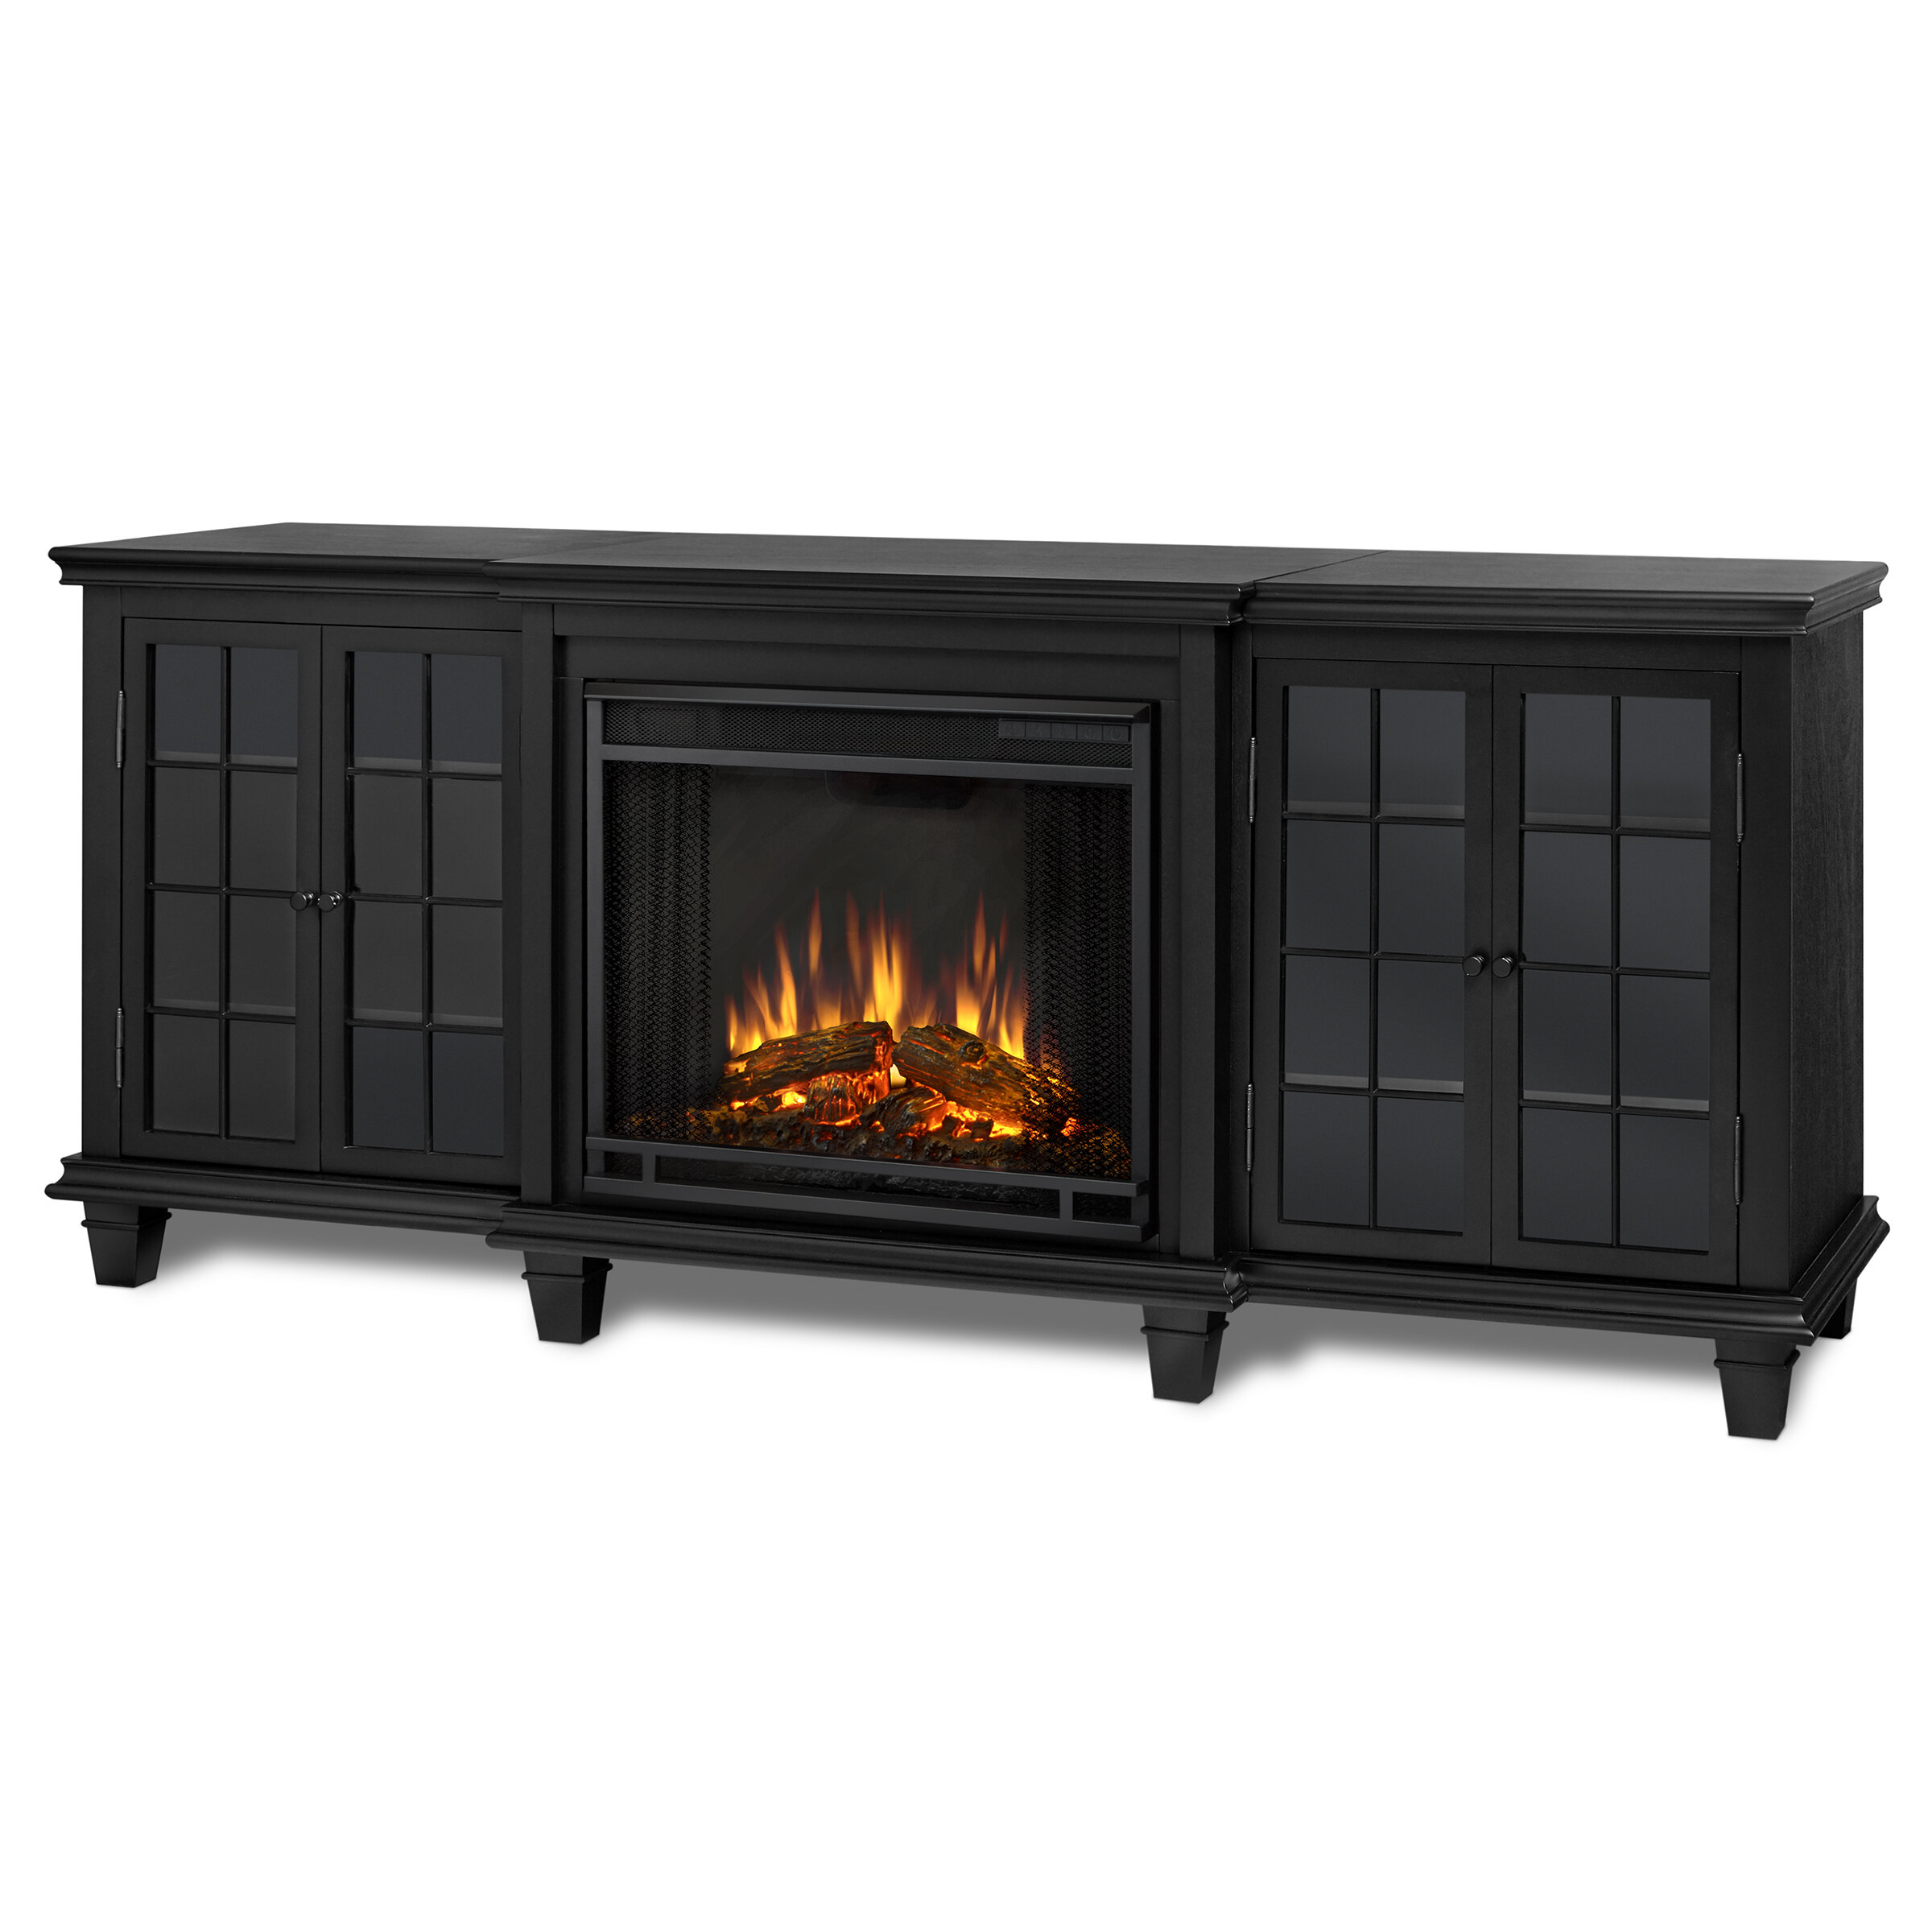 control in mount cambridge black furniture with metropolitan rocks fireplace electric view home patio outdoor remote wall quick d fireplaces crystal